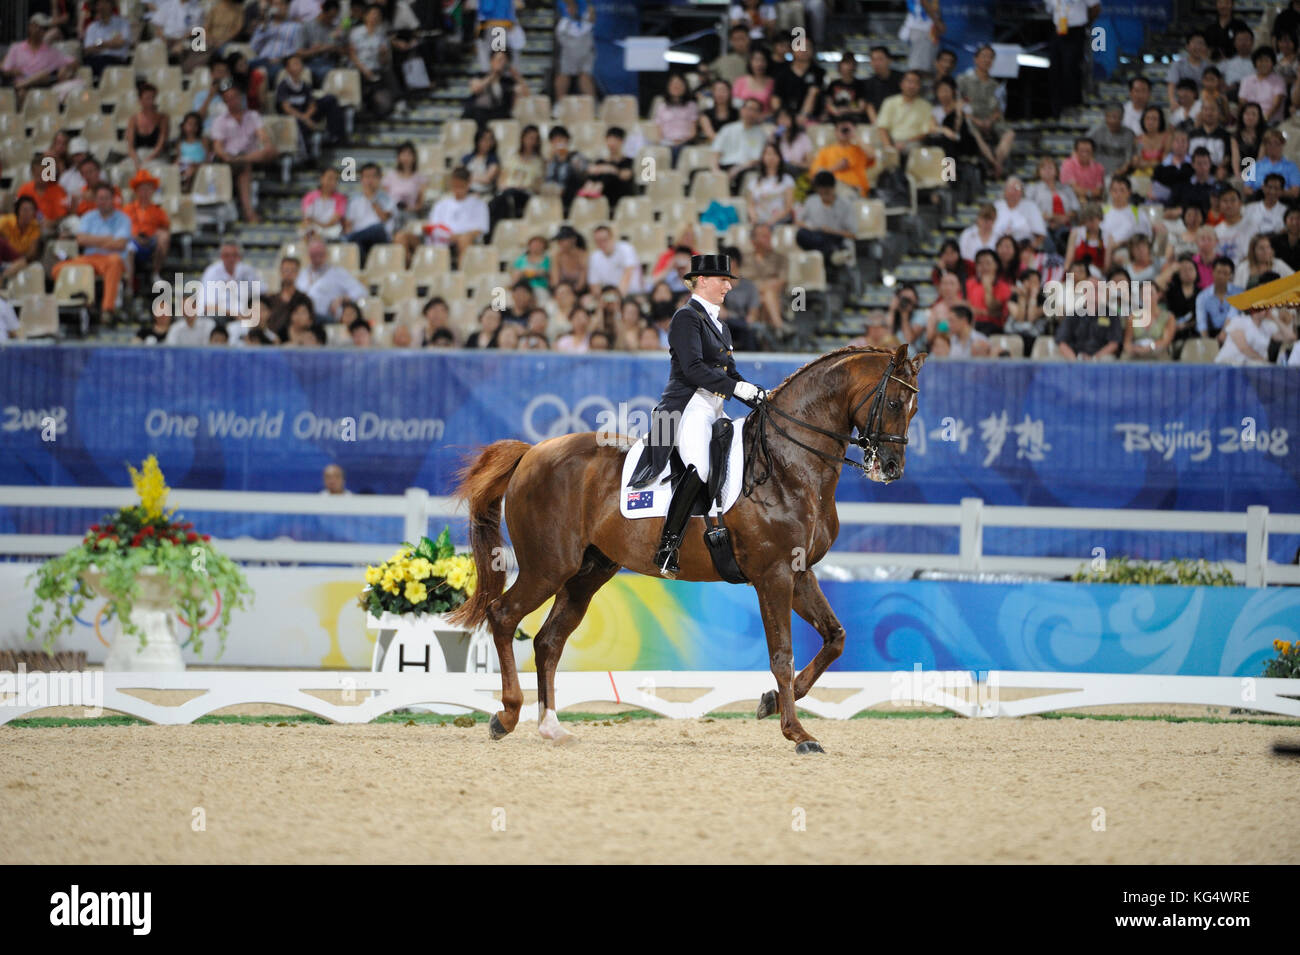 Olympic Games 2008, Hong Kong (Beijing Games) August 2008, Kristy Oatley-Nist (AUS) riding Quando-Quando, Dressage - Stock Image